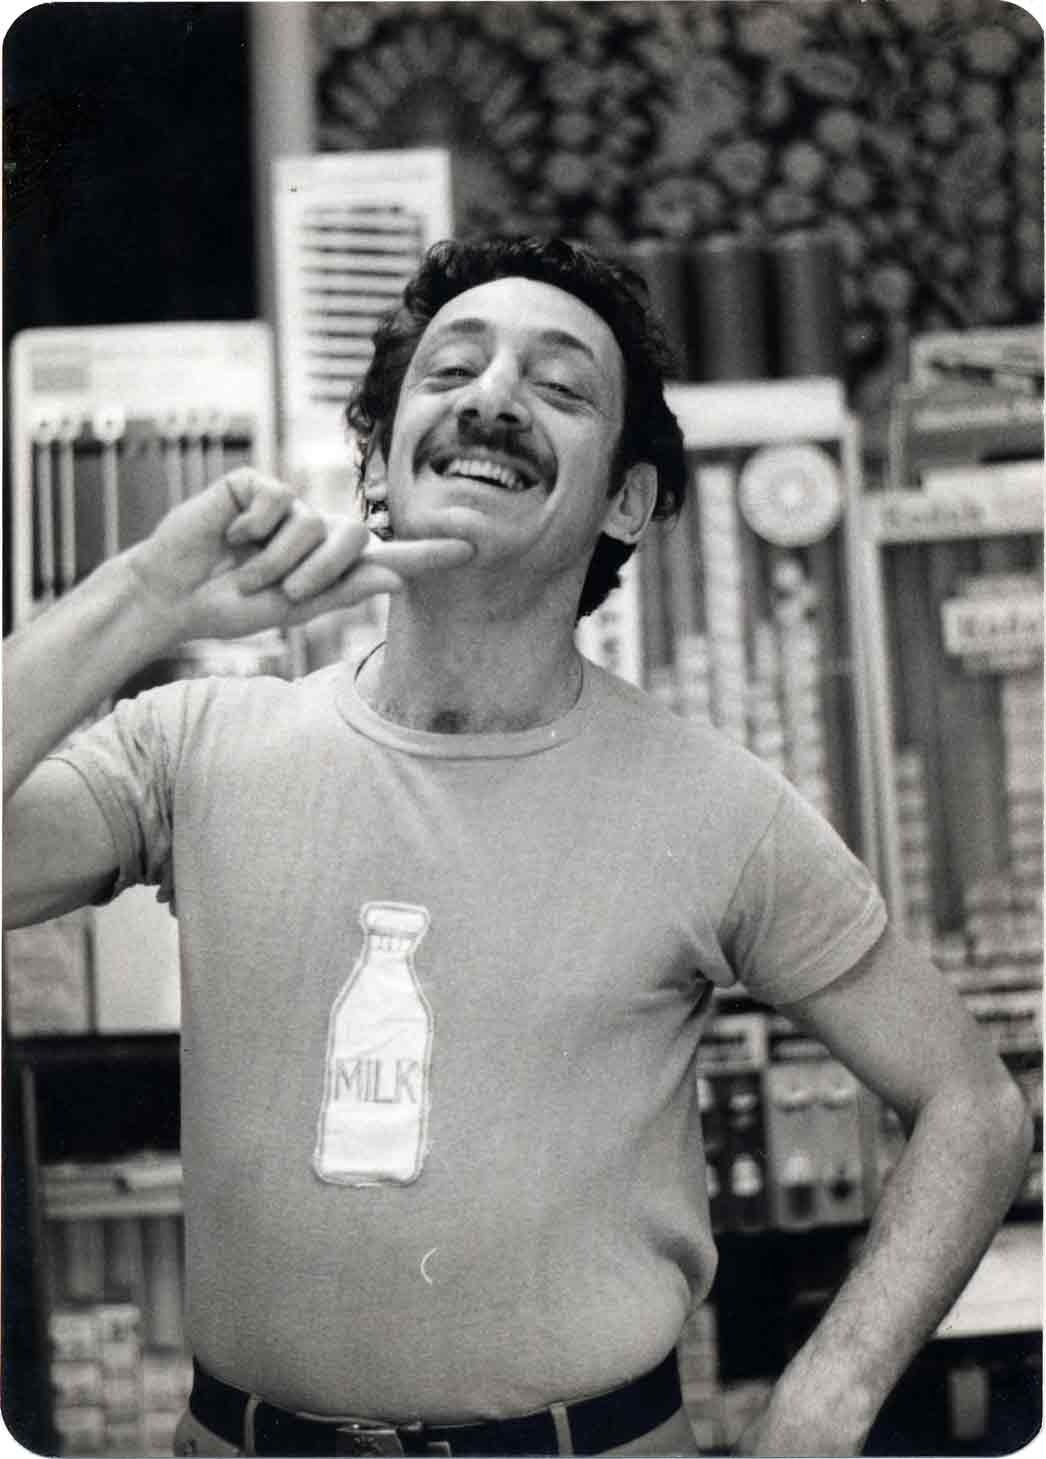 "Happy Harvey Milk Day everyone (especially to my fellow LGBTQ community)! Let's take this day to honor and rejoice in the legacy Mr. Milk left for us all and keep trudging forward! ""Hope will never be silent!"" -Mr. Bohs"